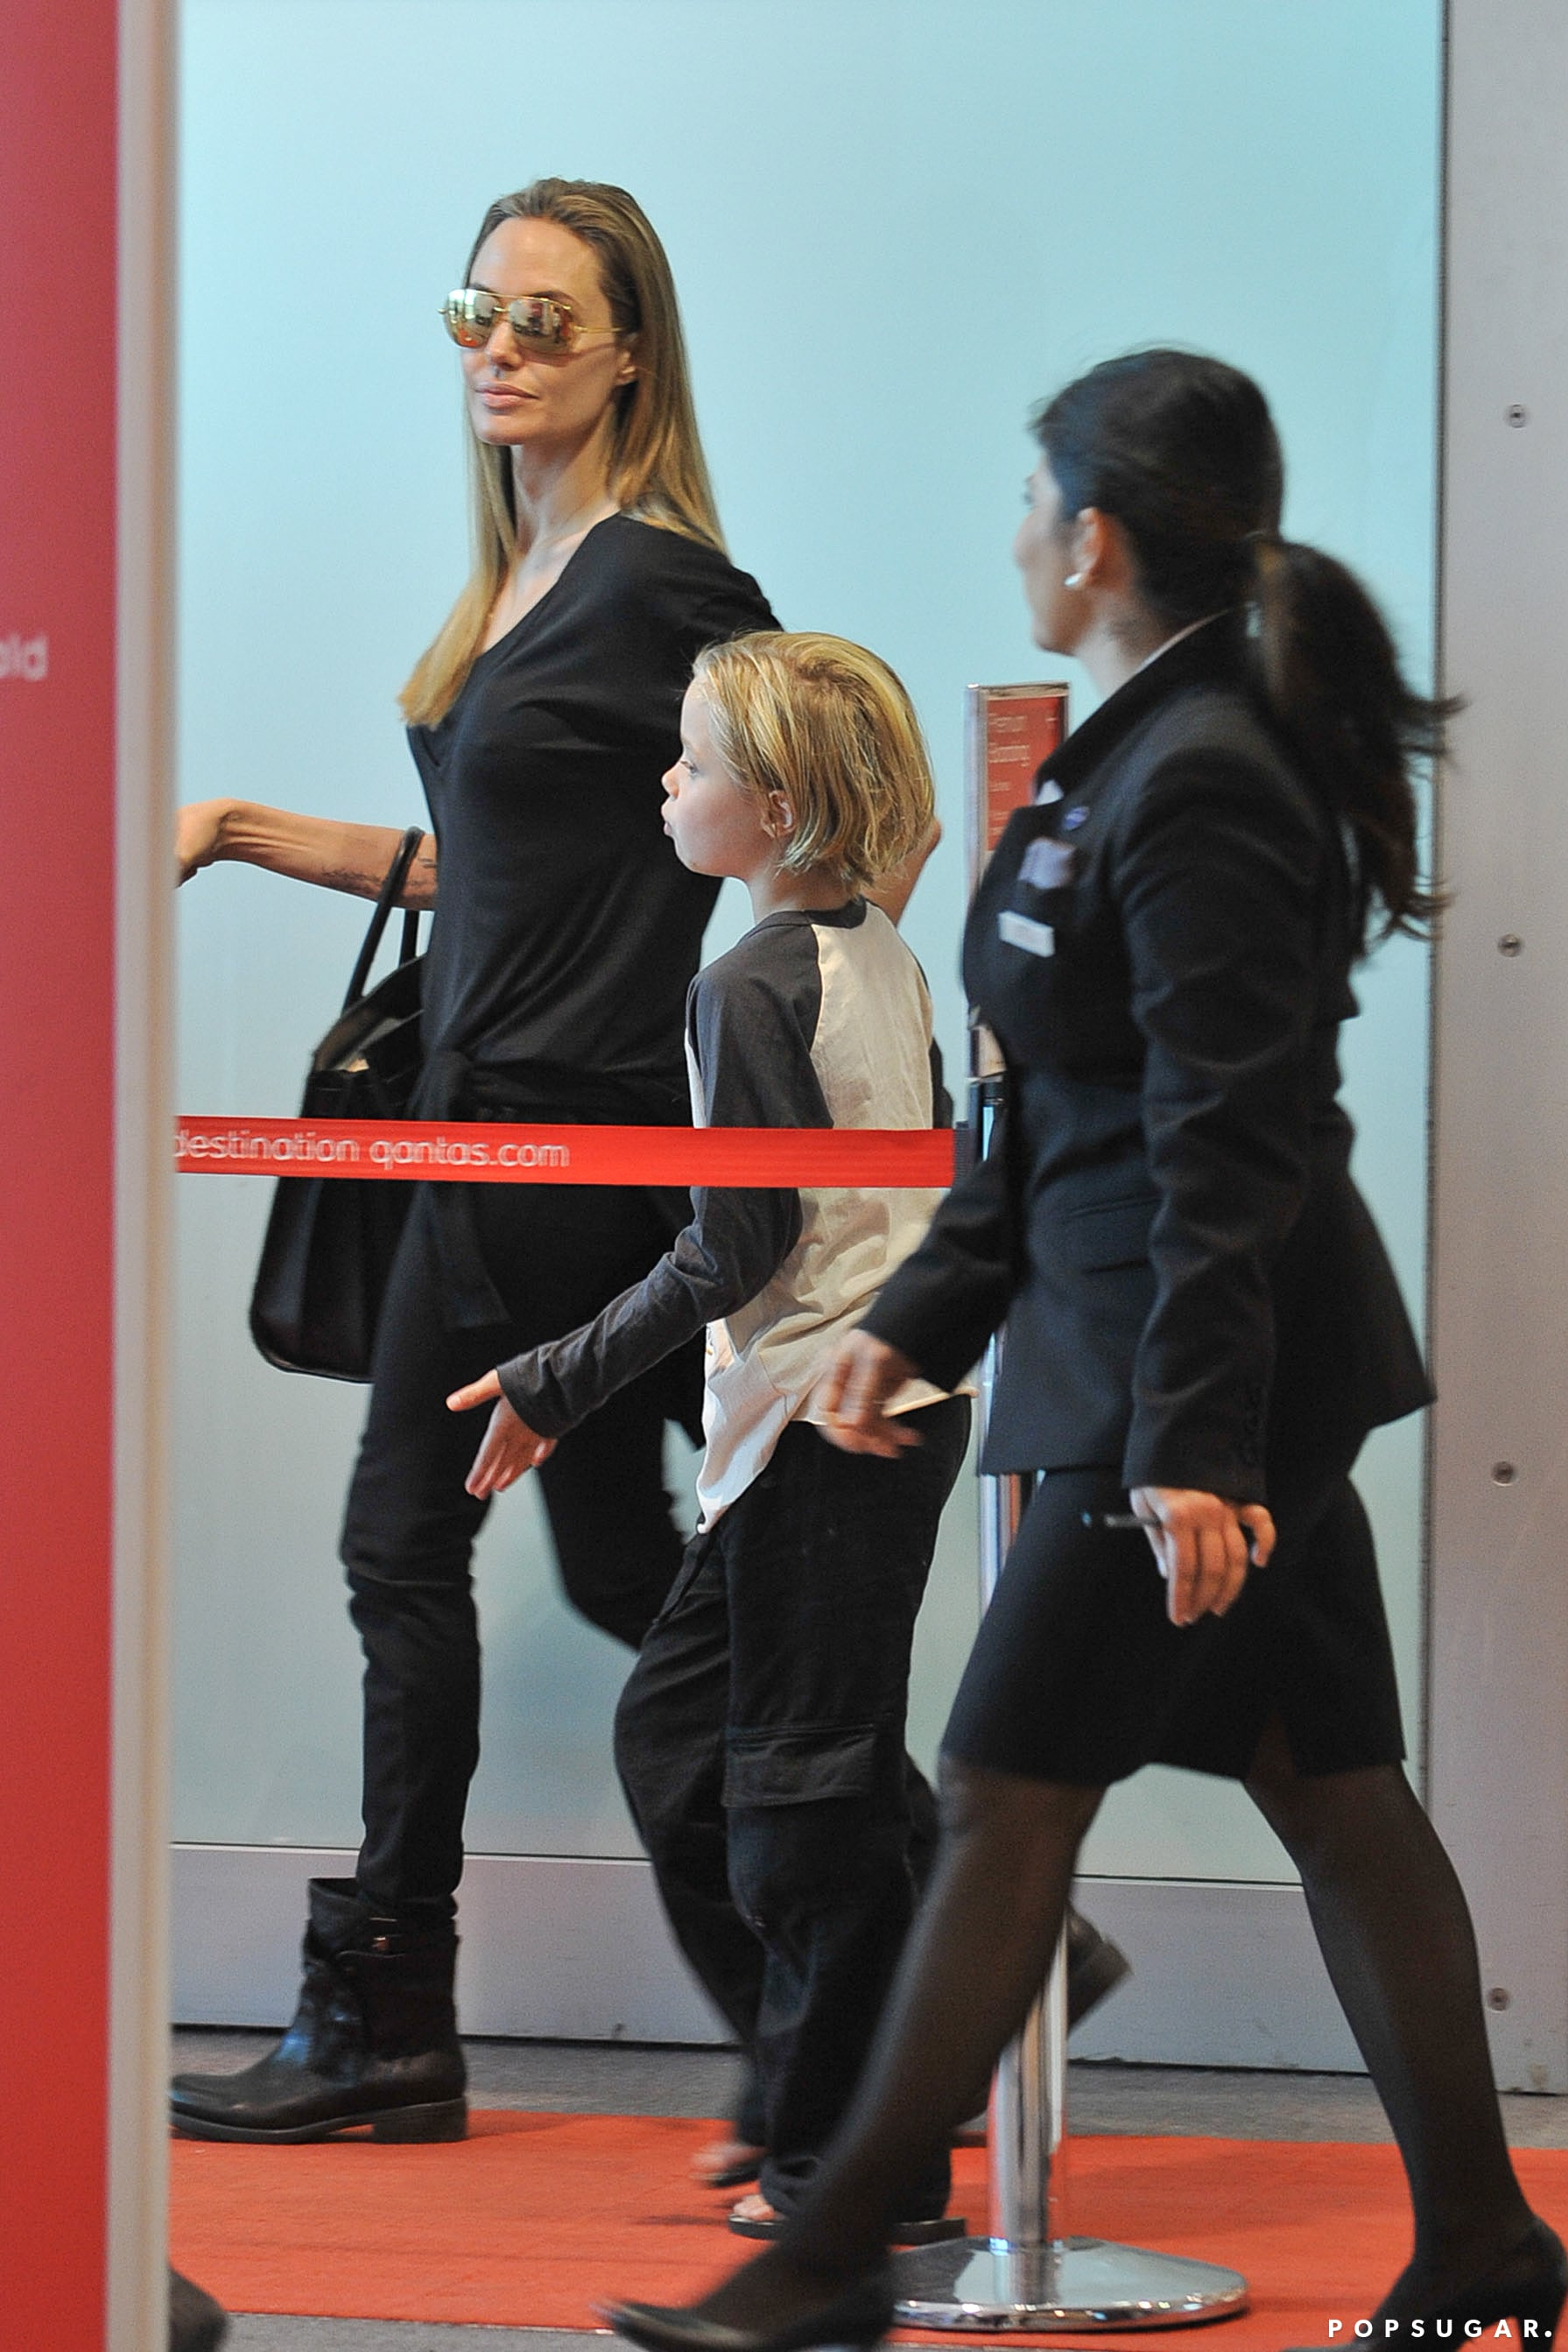 Angelina Jolie held her daughter Shiloh's hand as they boarded a plane in Sydney.